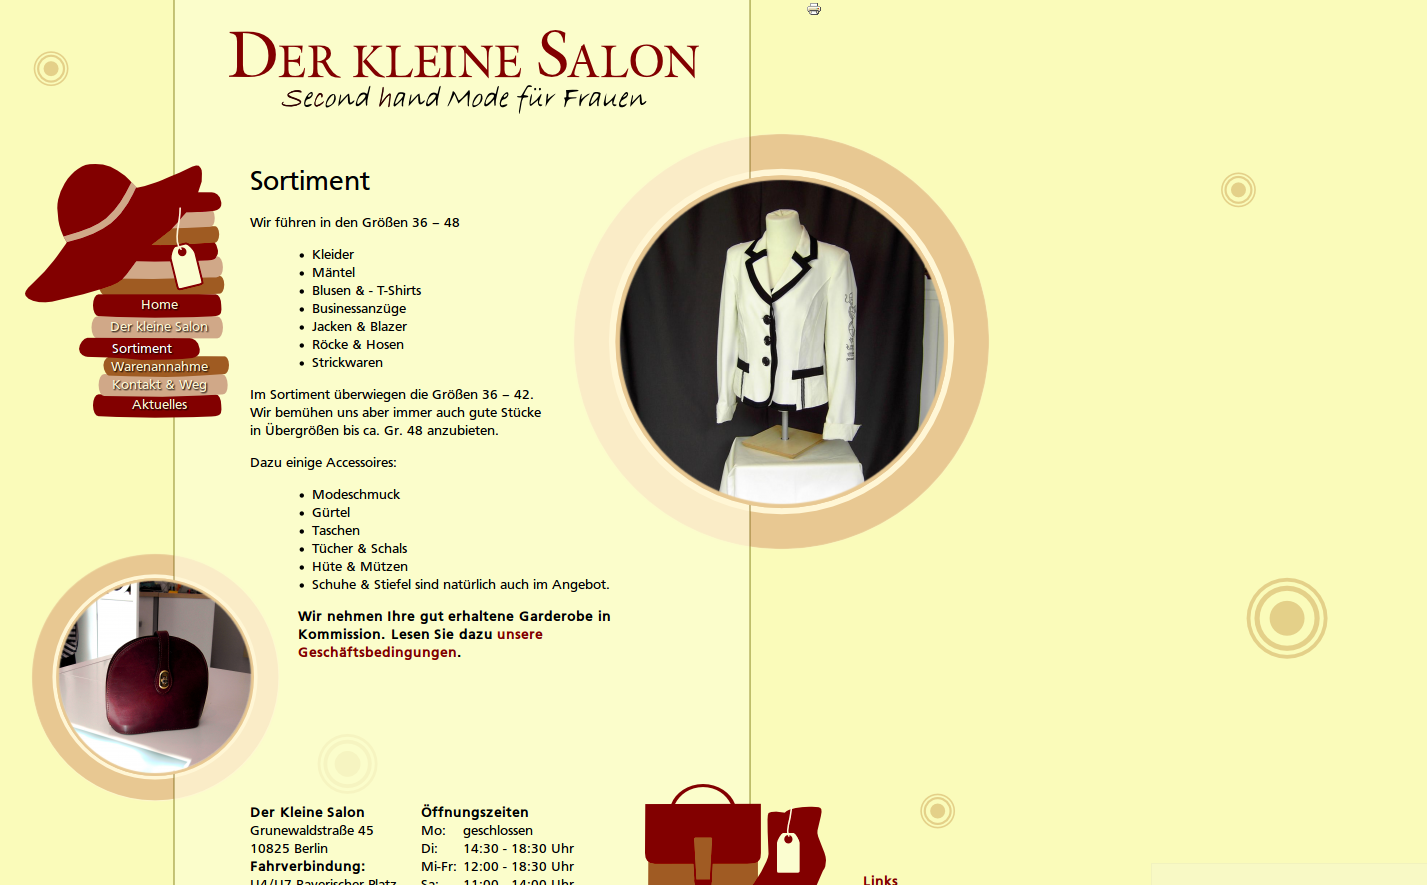 Der kleine Salon: Website - Sortiment